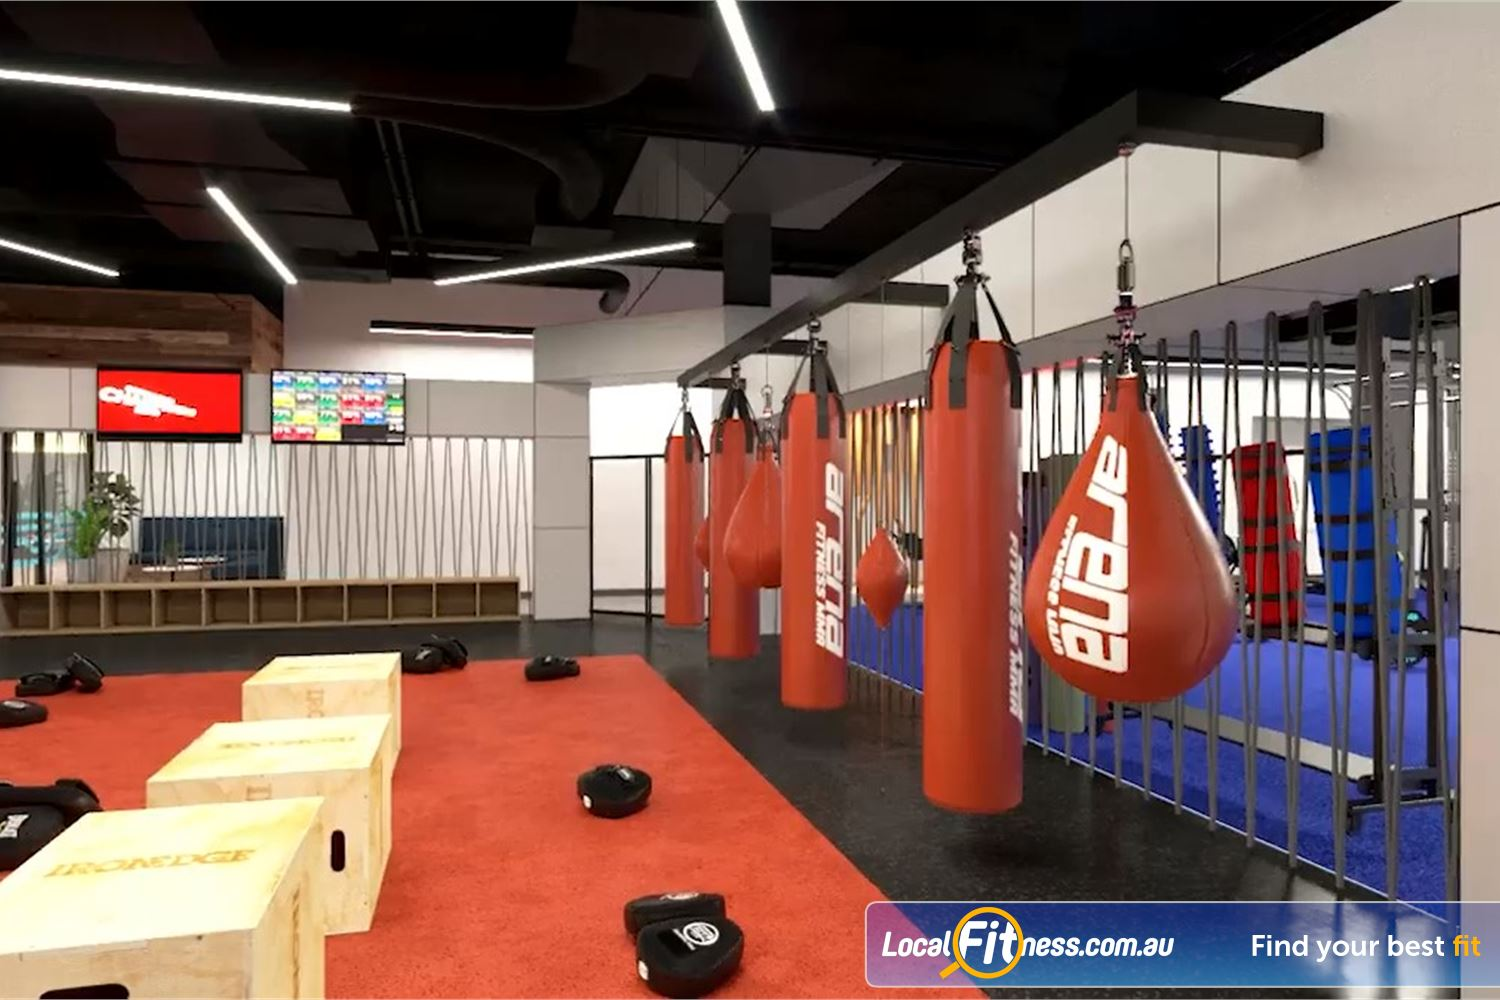 Goodlife Health Clubs Near Torrington Regular gym workouts don't compare to the experience inside an Arena Fitness studio.